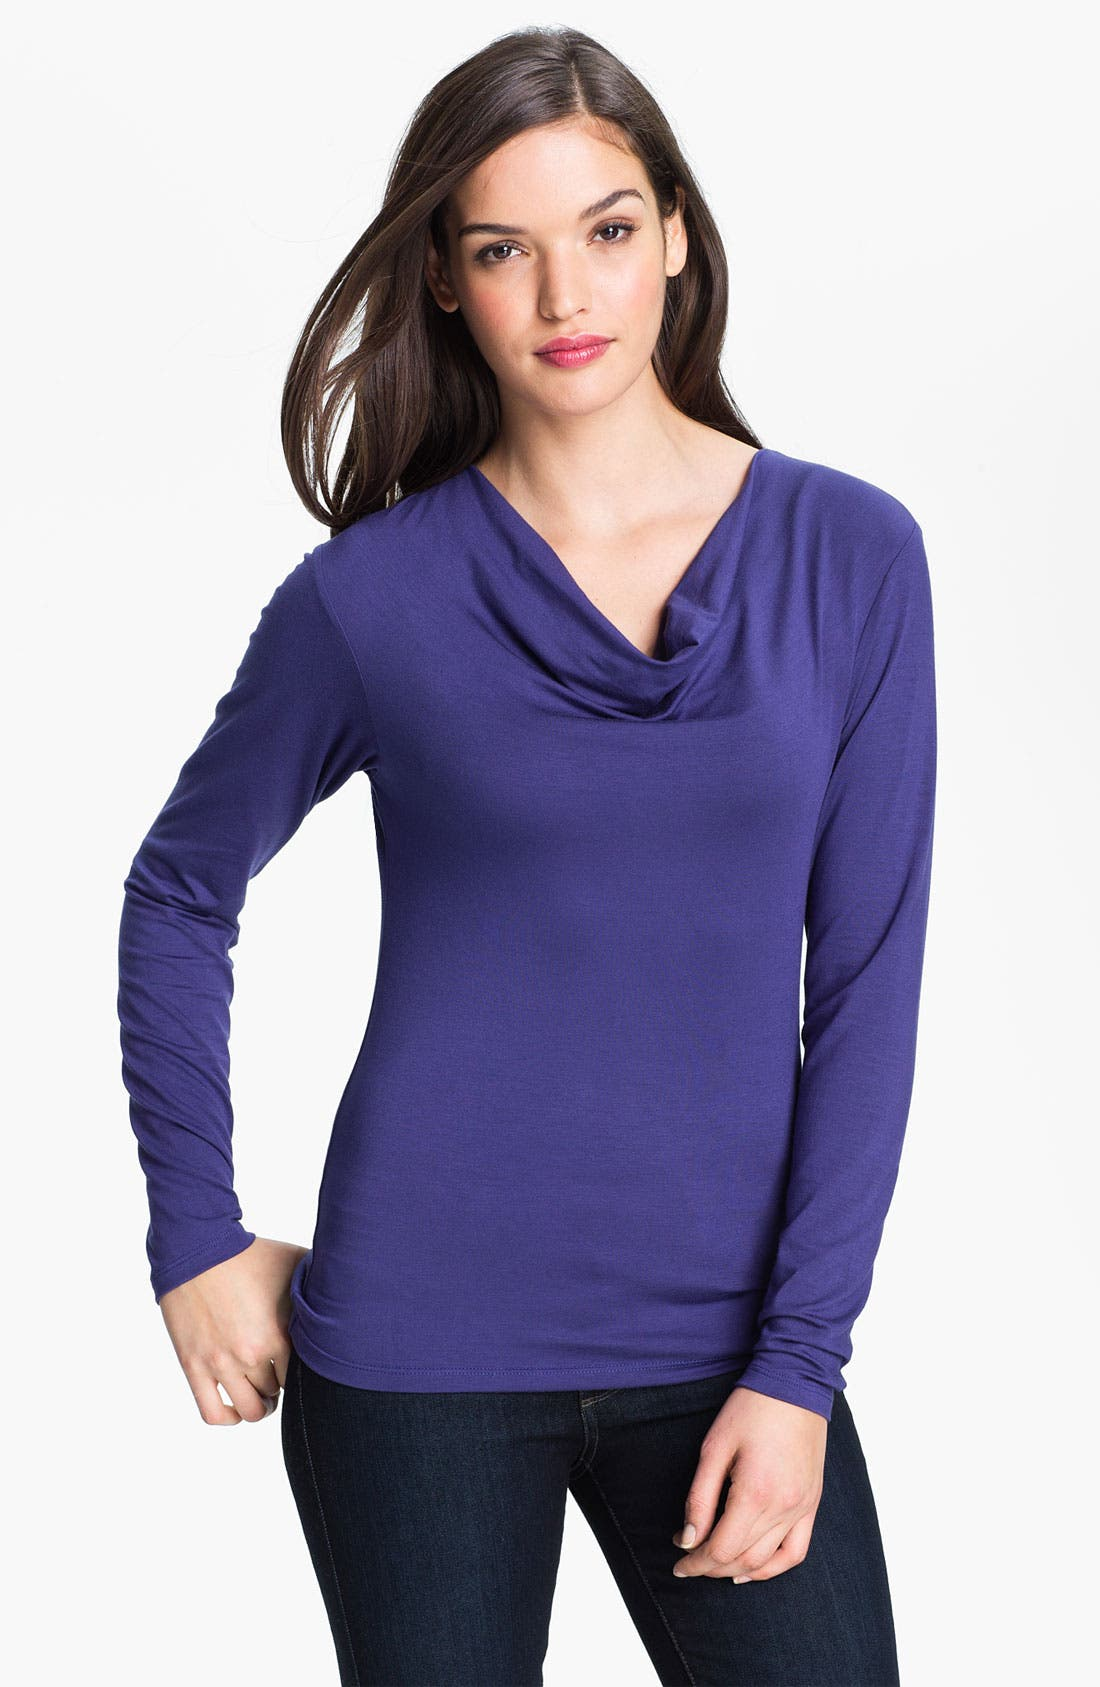 Alternate Image 1 Selected - Purity Cowl Neck Long Sleeve Top